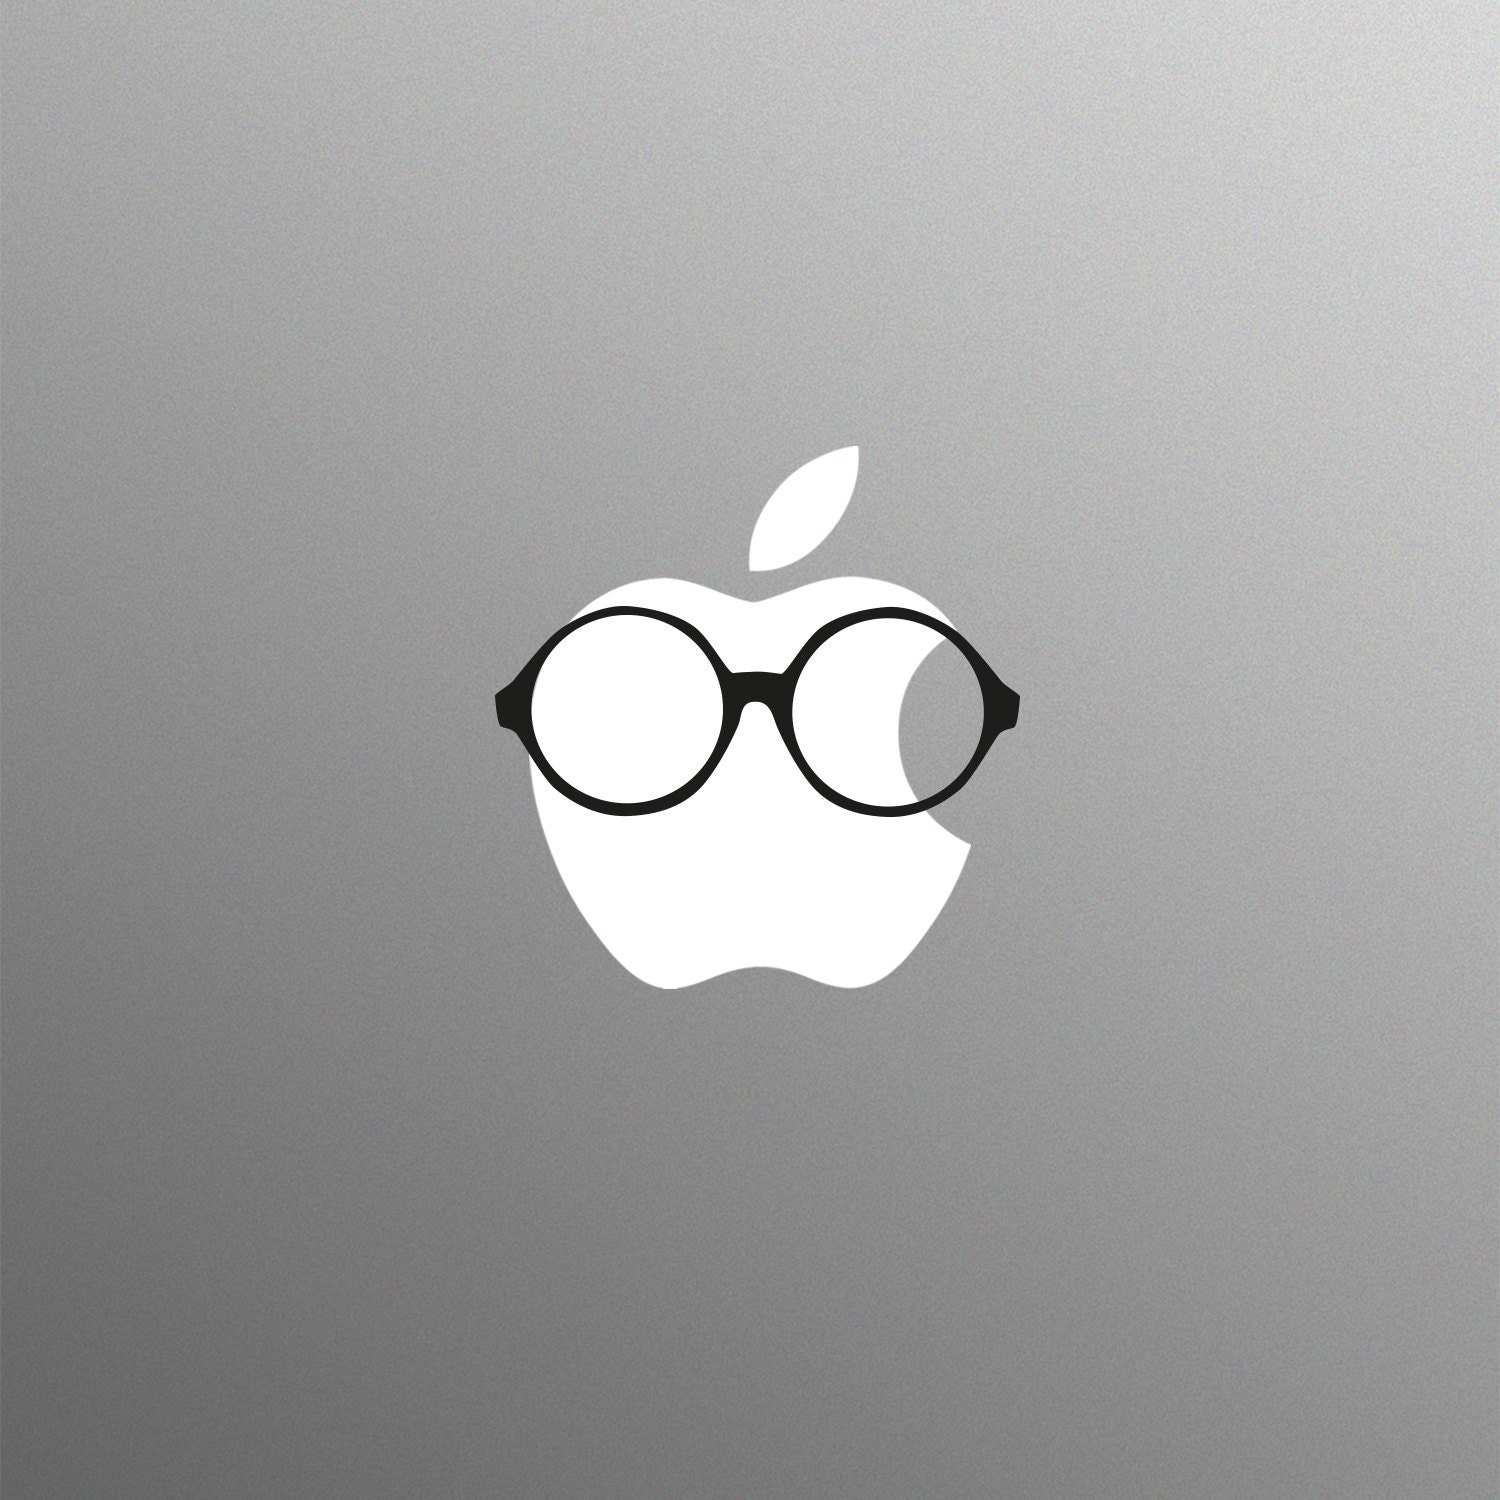 Round Geeky Glasses Laptop Sticker for Apple MacBook  Pro  Air